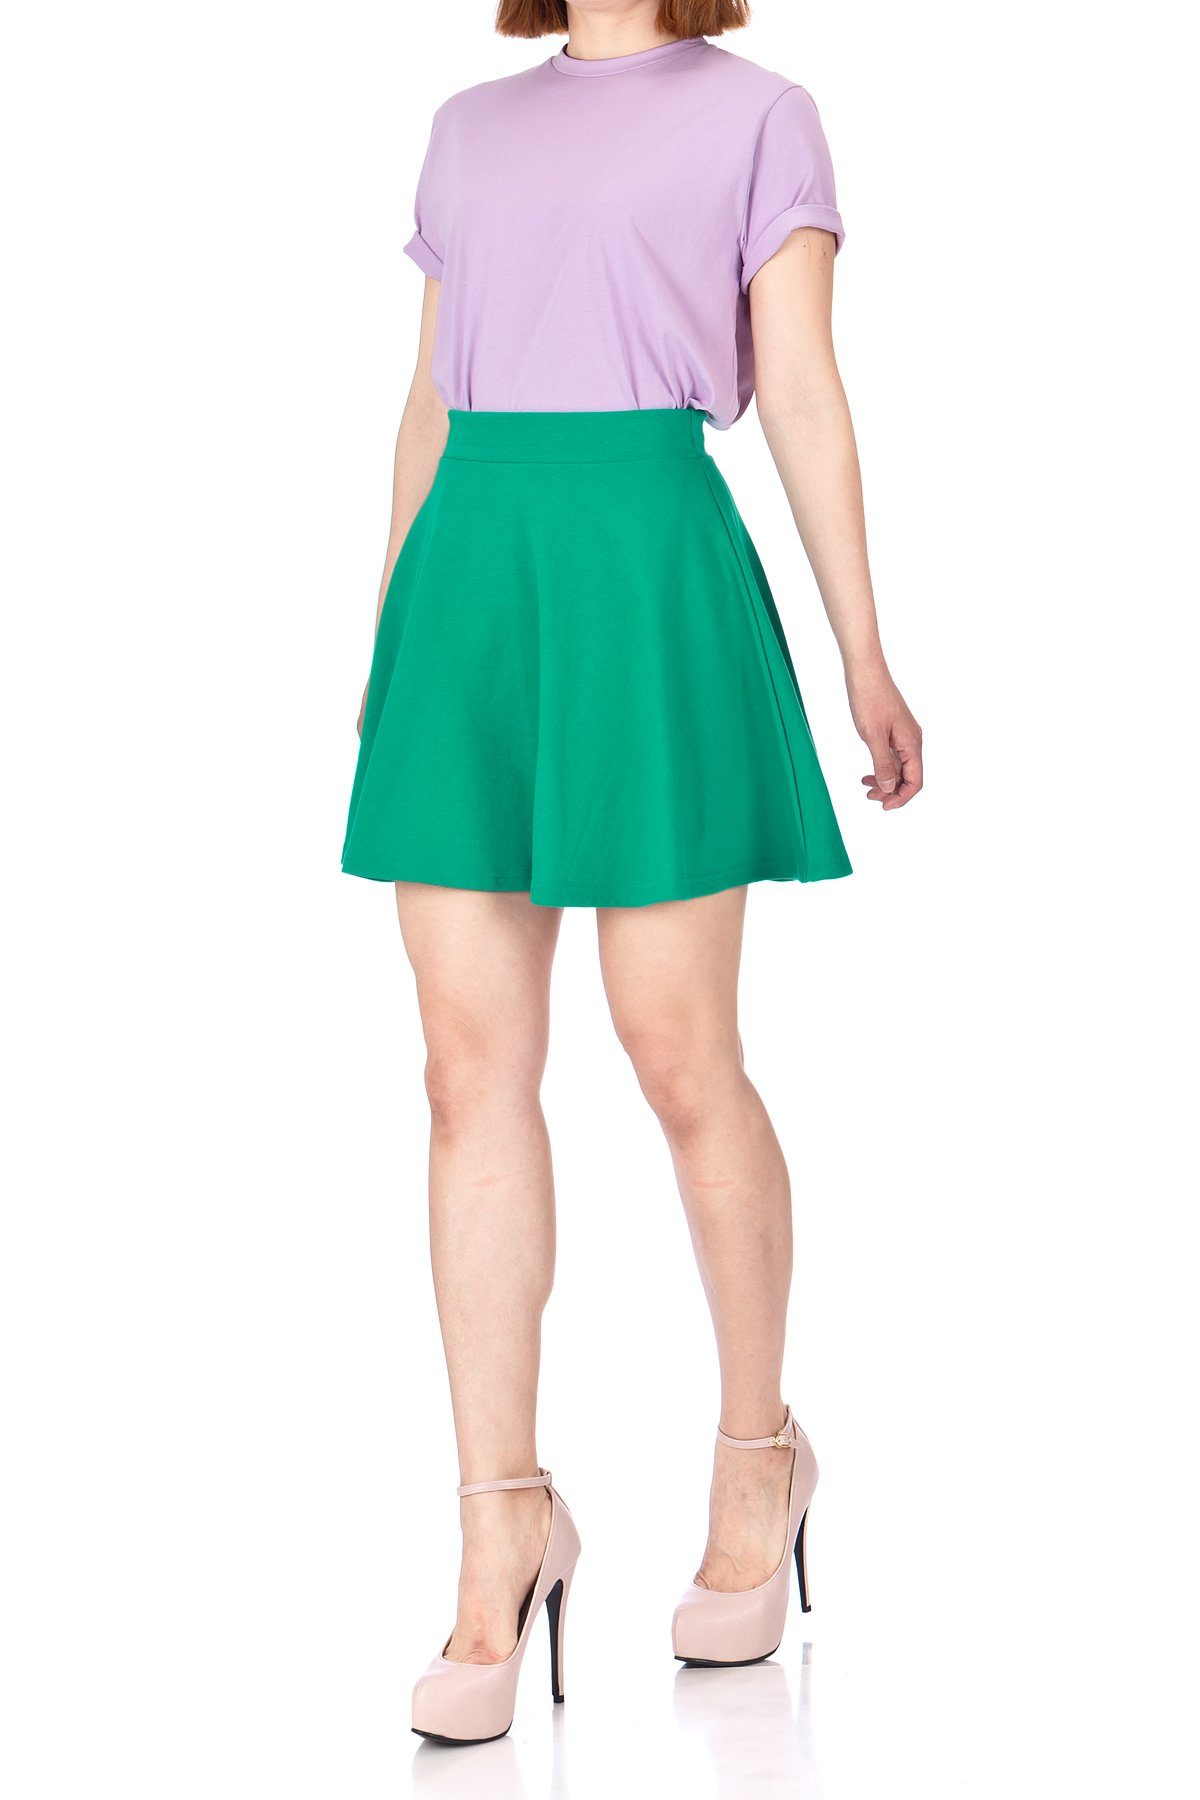 Basic Solid Stretchy Cotton High Waist A line Flared Skater Mini Skirt Green 05